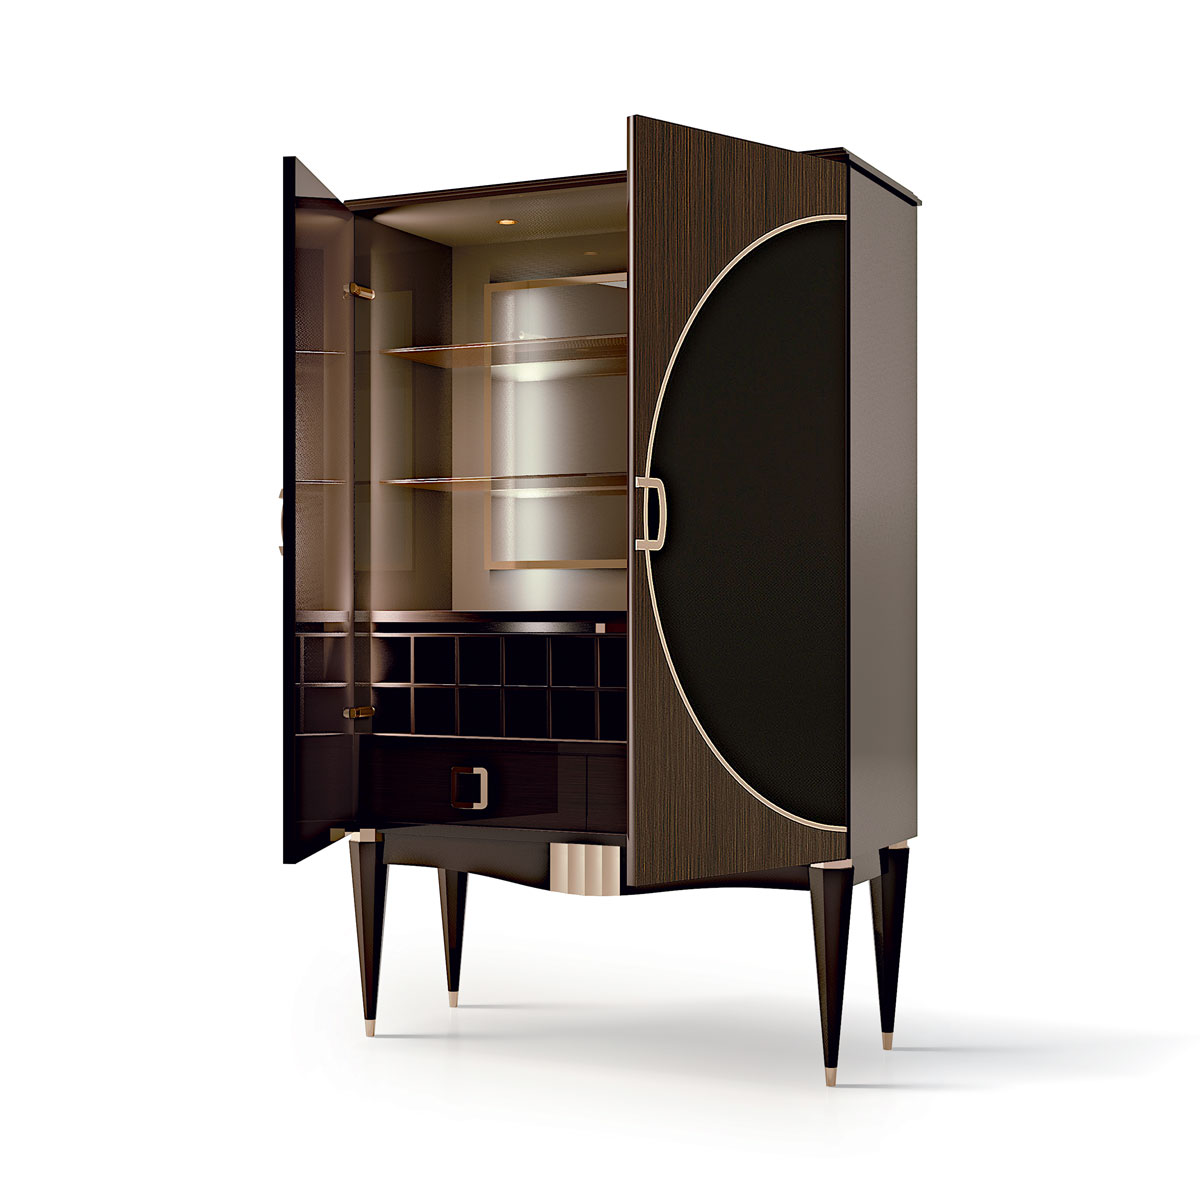 2 DOORS BAR WITH CANALETTO INSERT AND DECOR